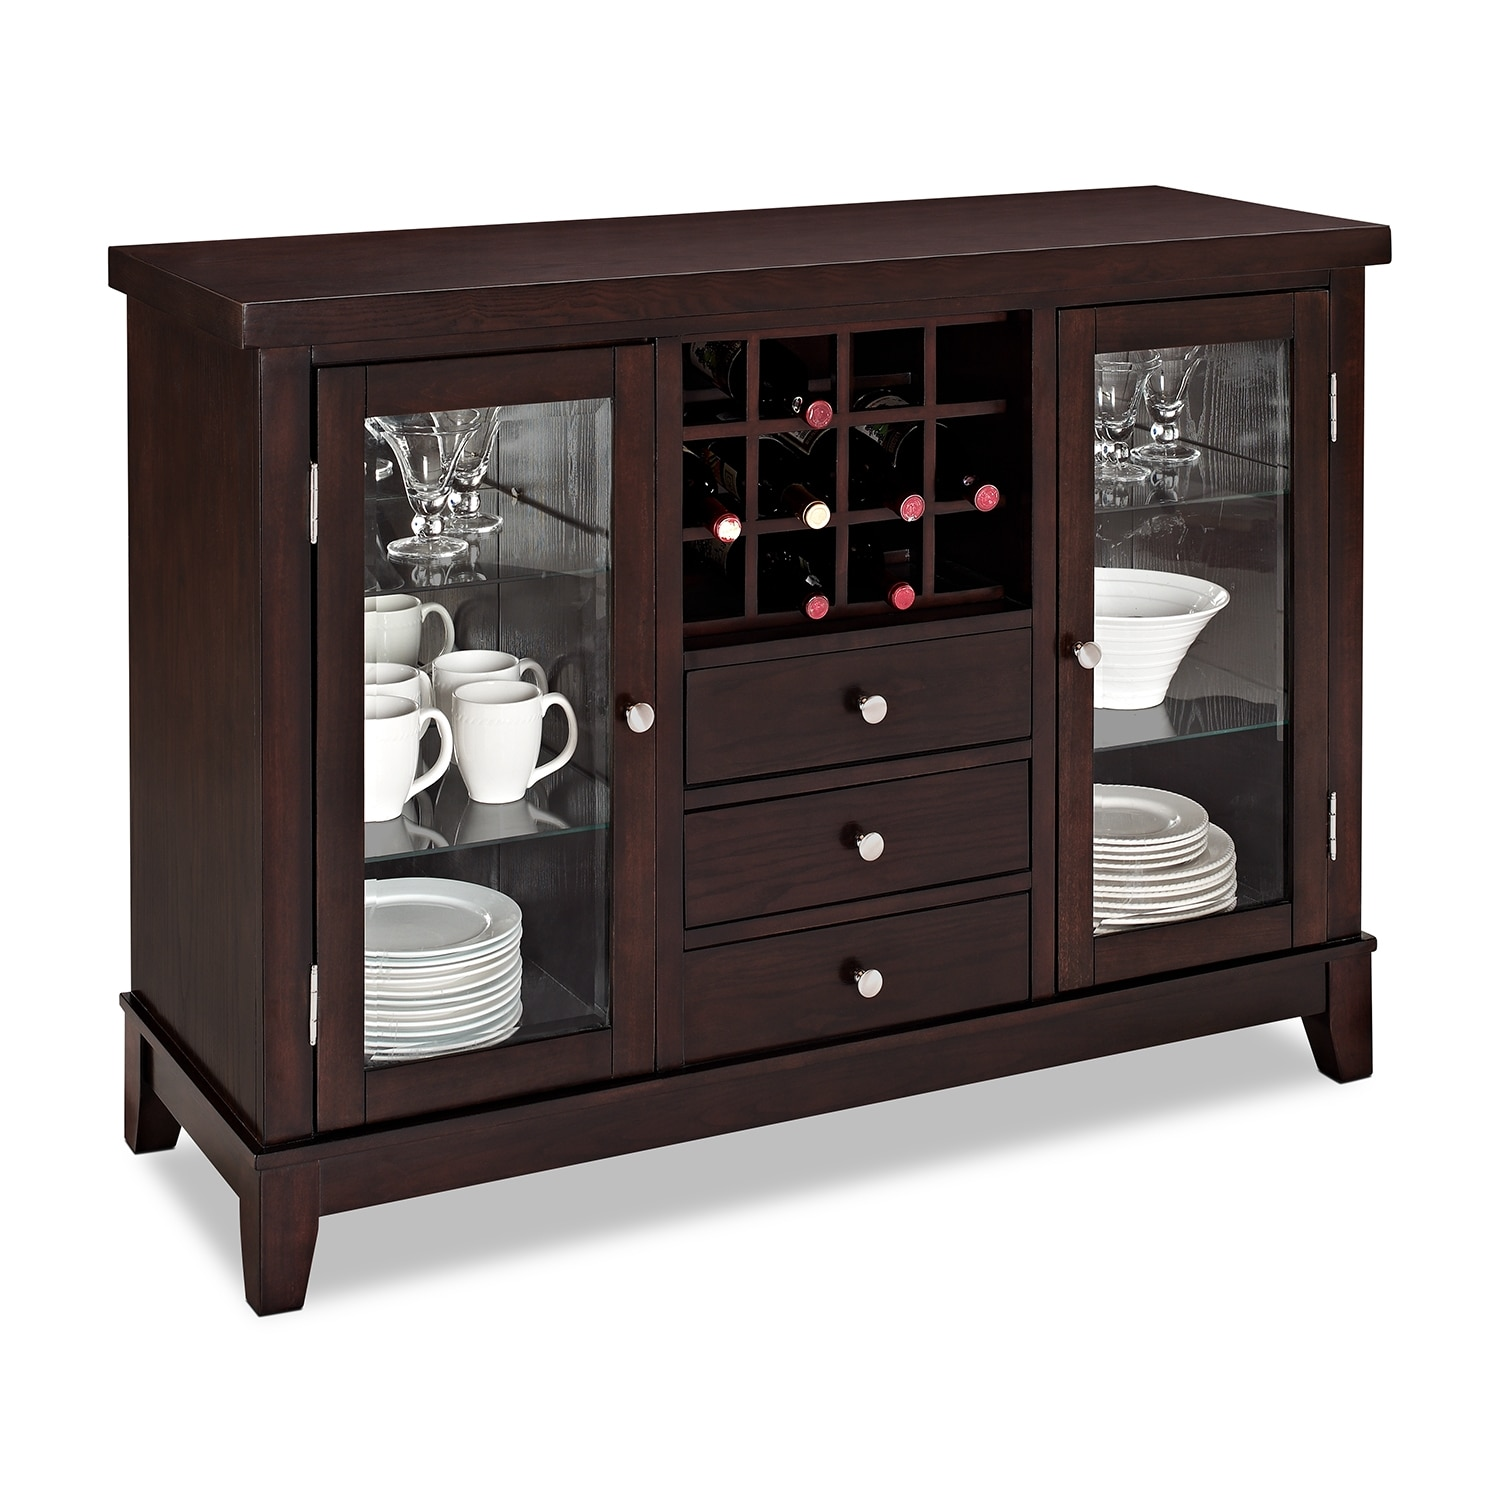 Value city furniture - Dining room server furniture ...